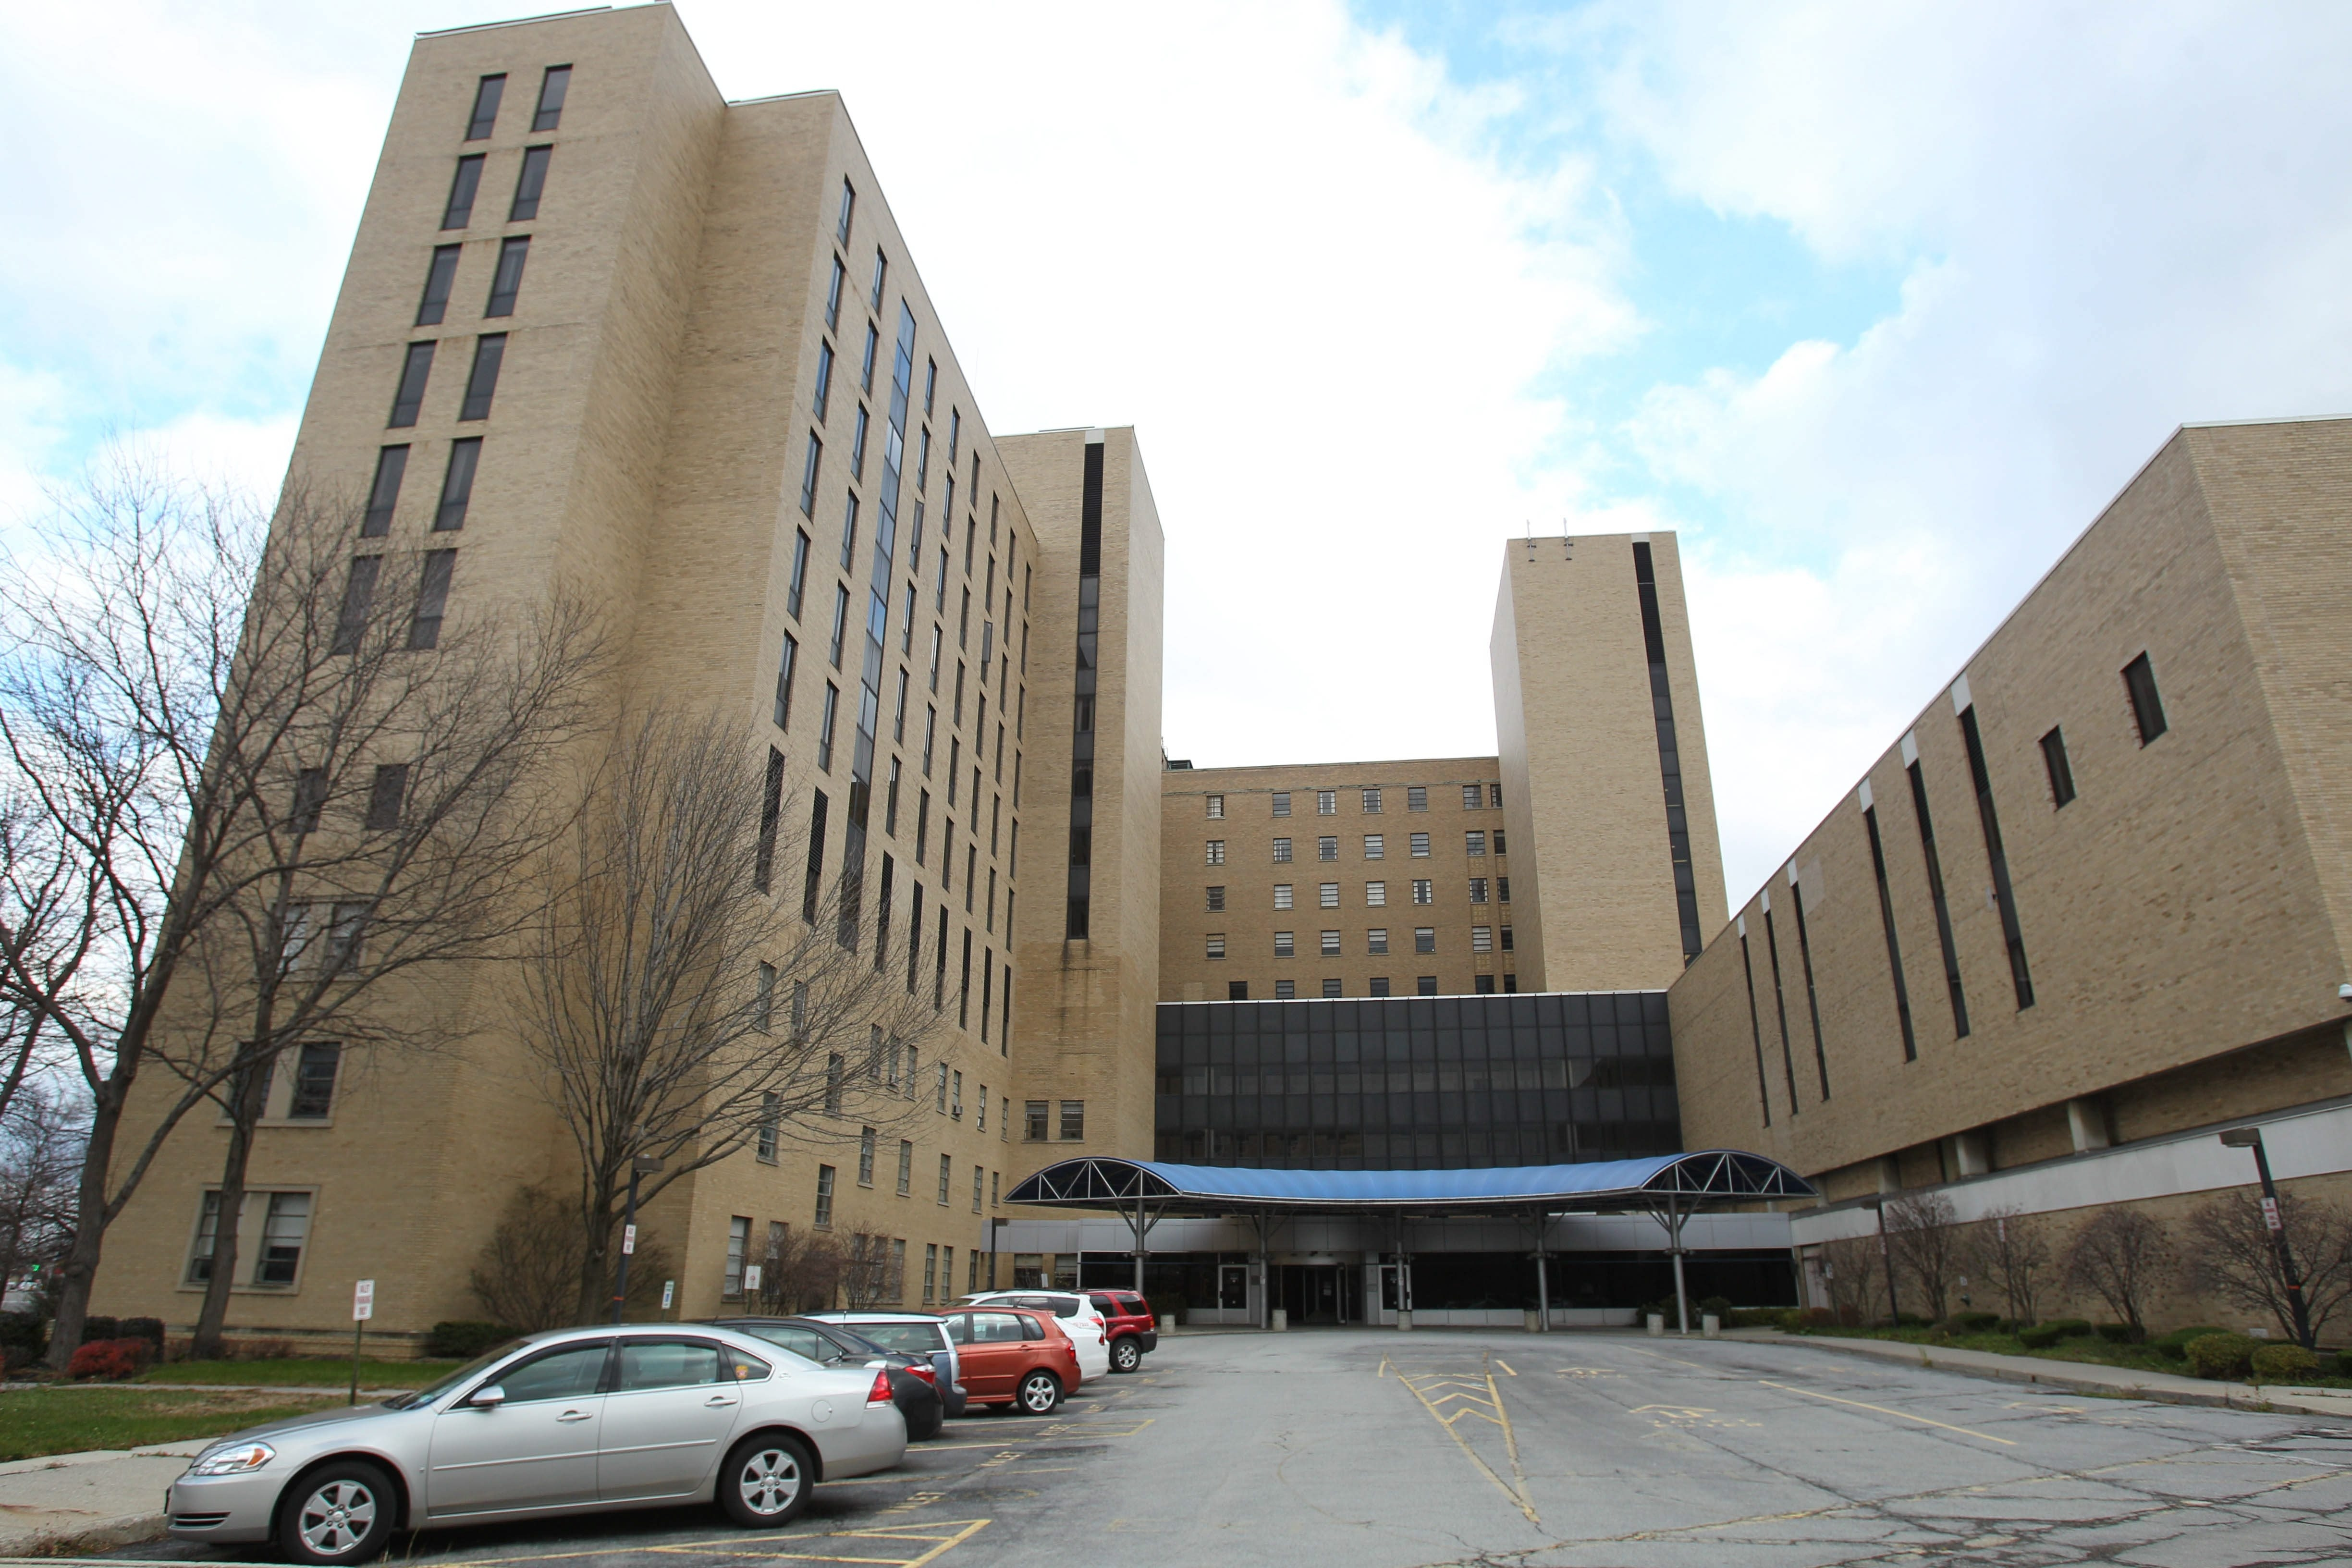 Montante's proposal calls for razing the 10-story main building at the former Millard Hospital Gates Circle and replacing it with a $28 million Canterbury Woods satellite facility with 50 to 55 senior citizen living units.  (Sharon Cantillon/Buffalo News)